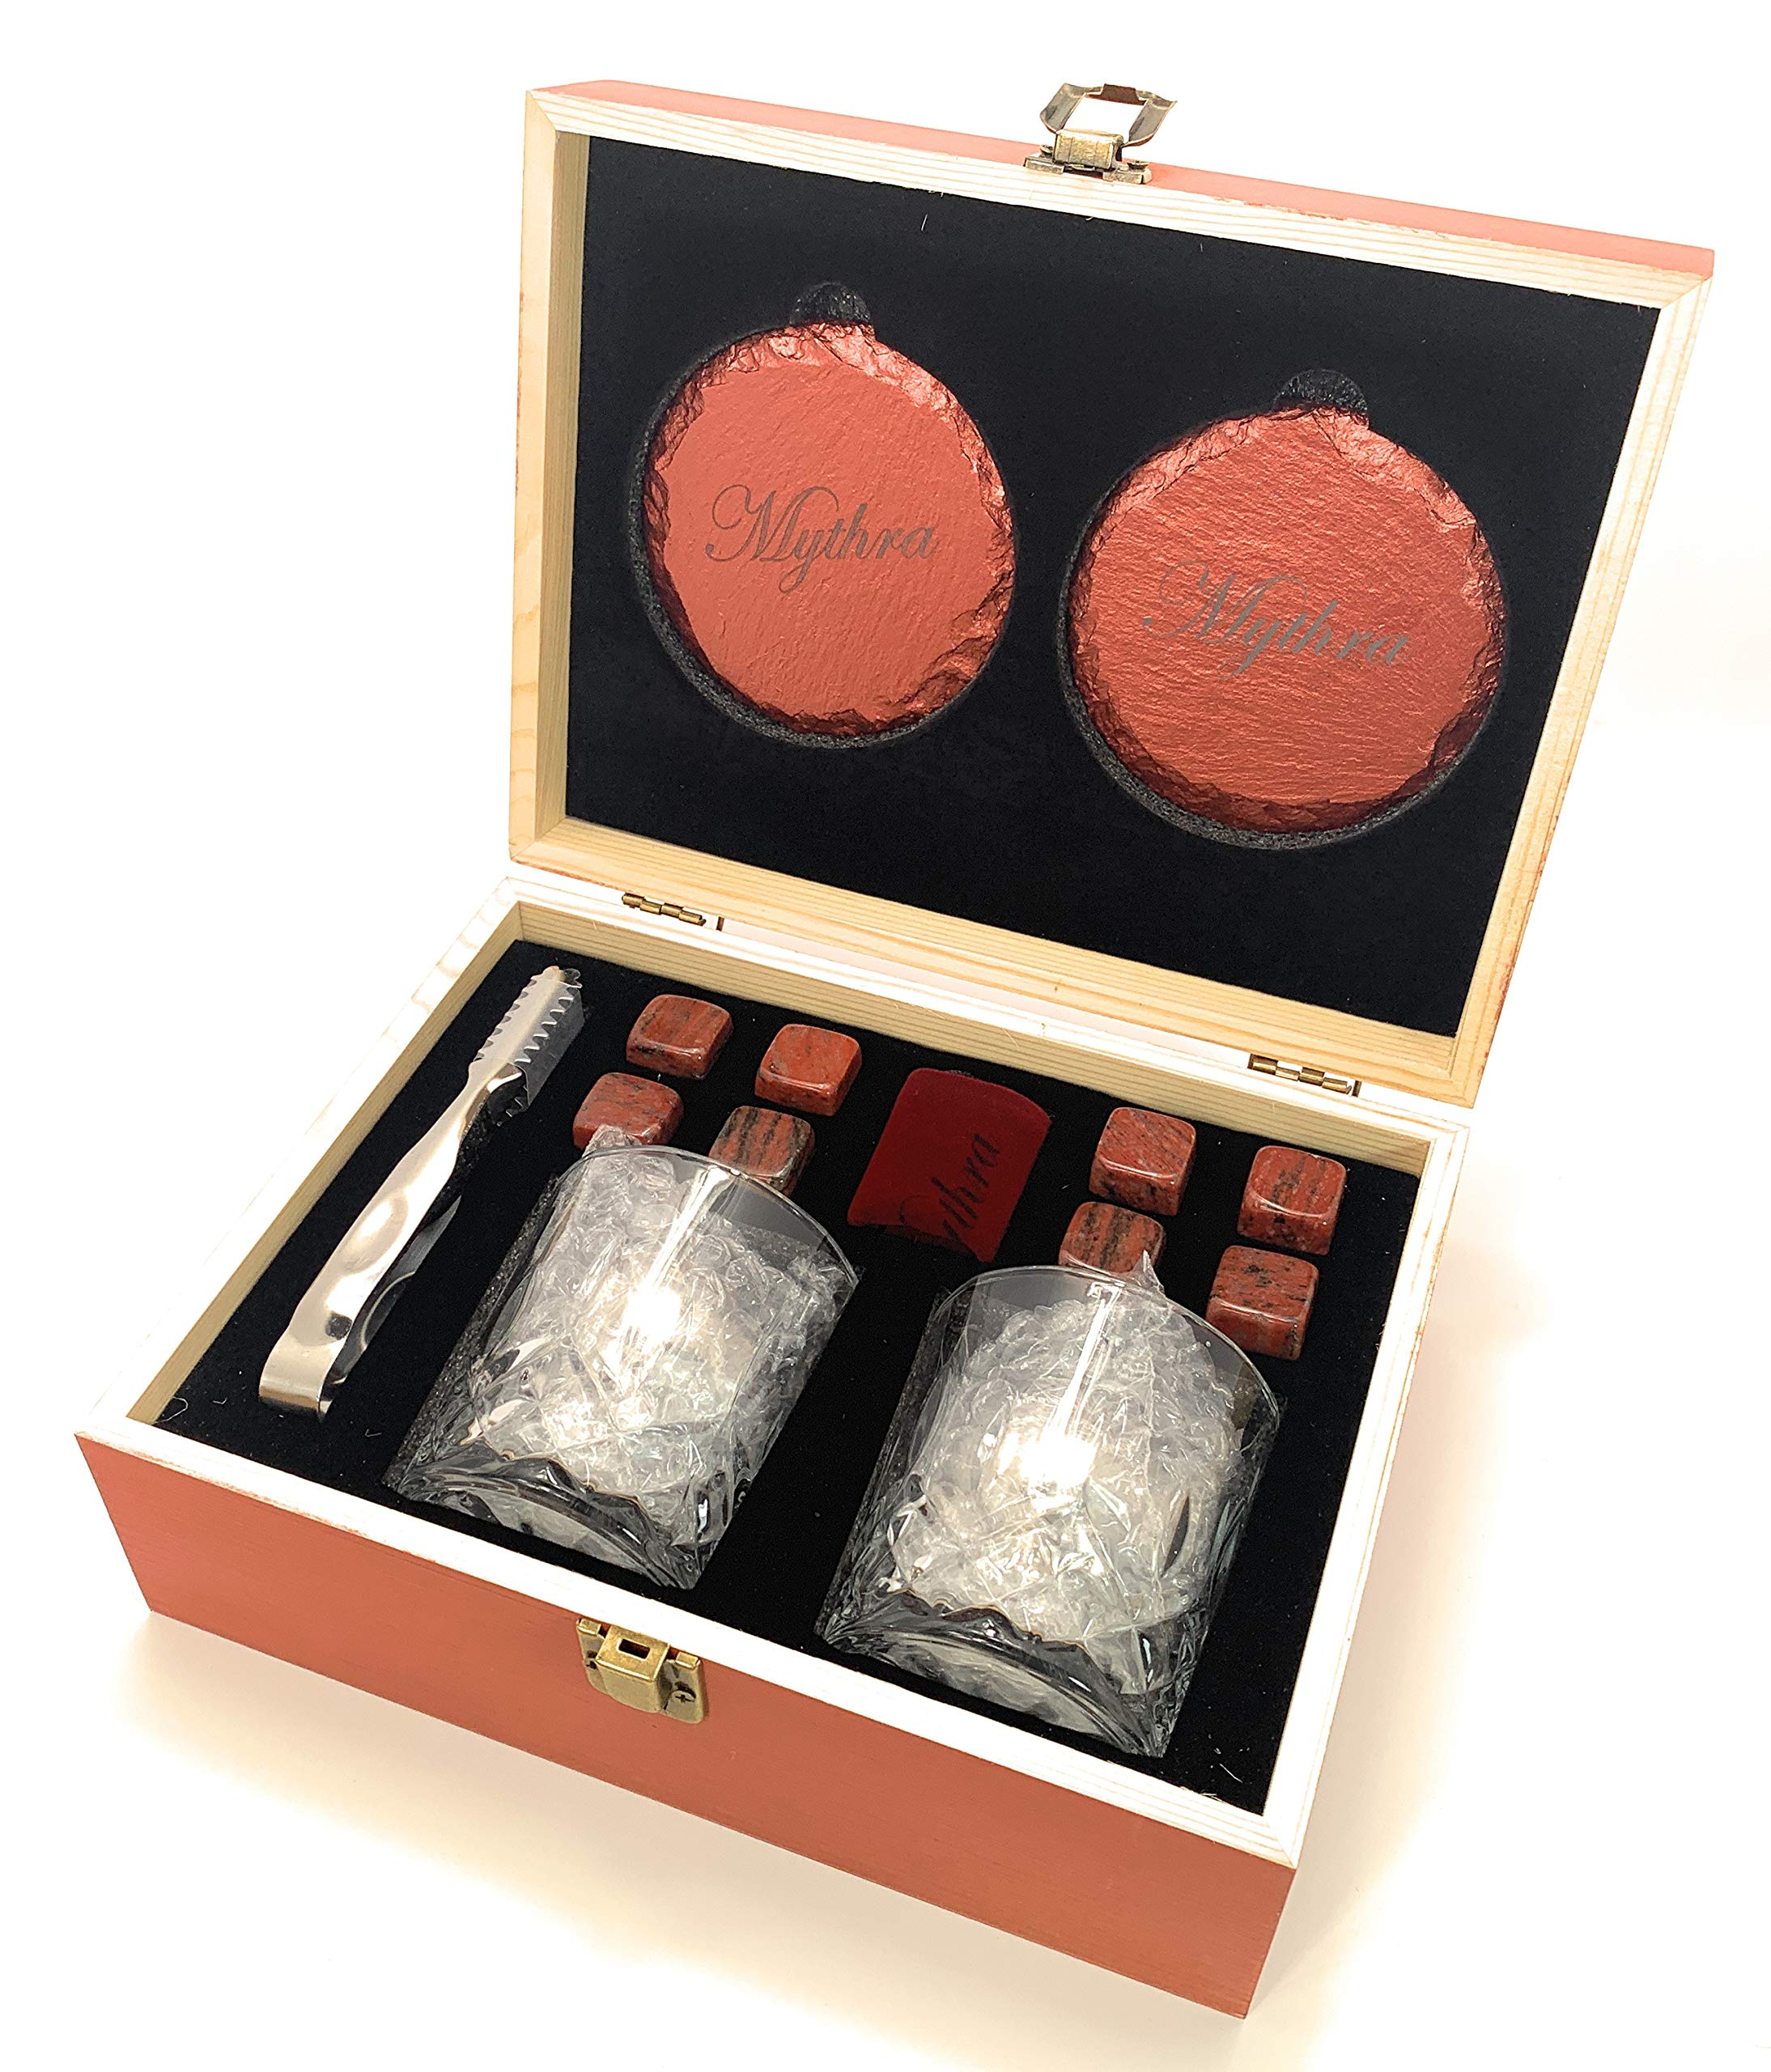 Whiskey glass set and Whiskey stones gift set 8 granite soap stone, 2 stone coasters, 1 Scotch rock tongs, 1 velvet bag 2 stainless steel metal chilling balls By Mythra (Red)